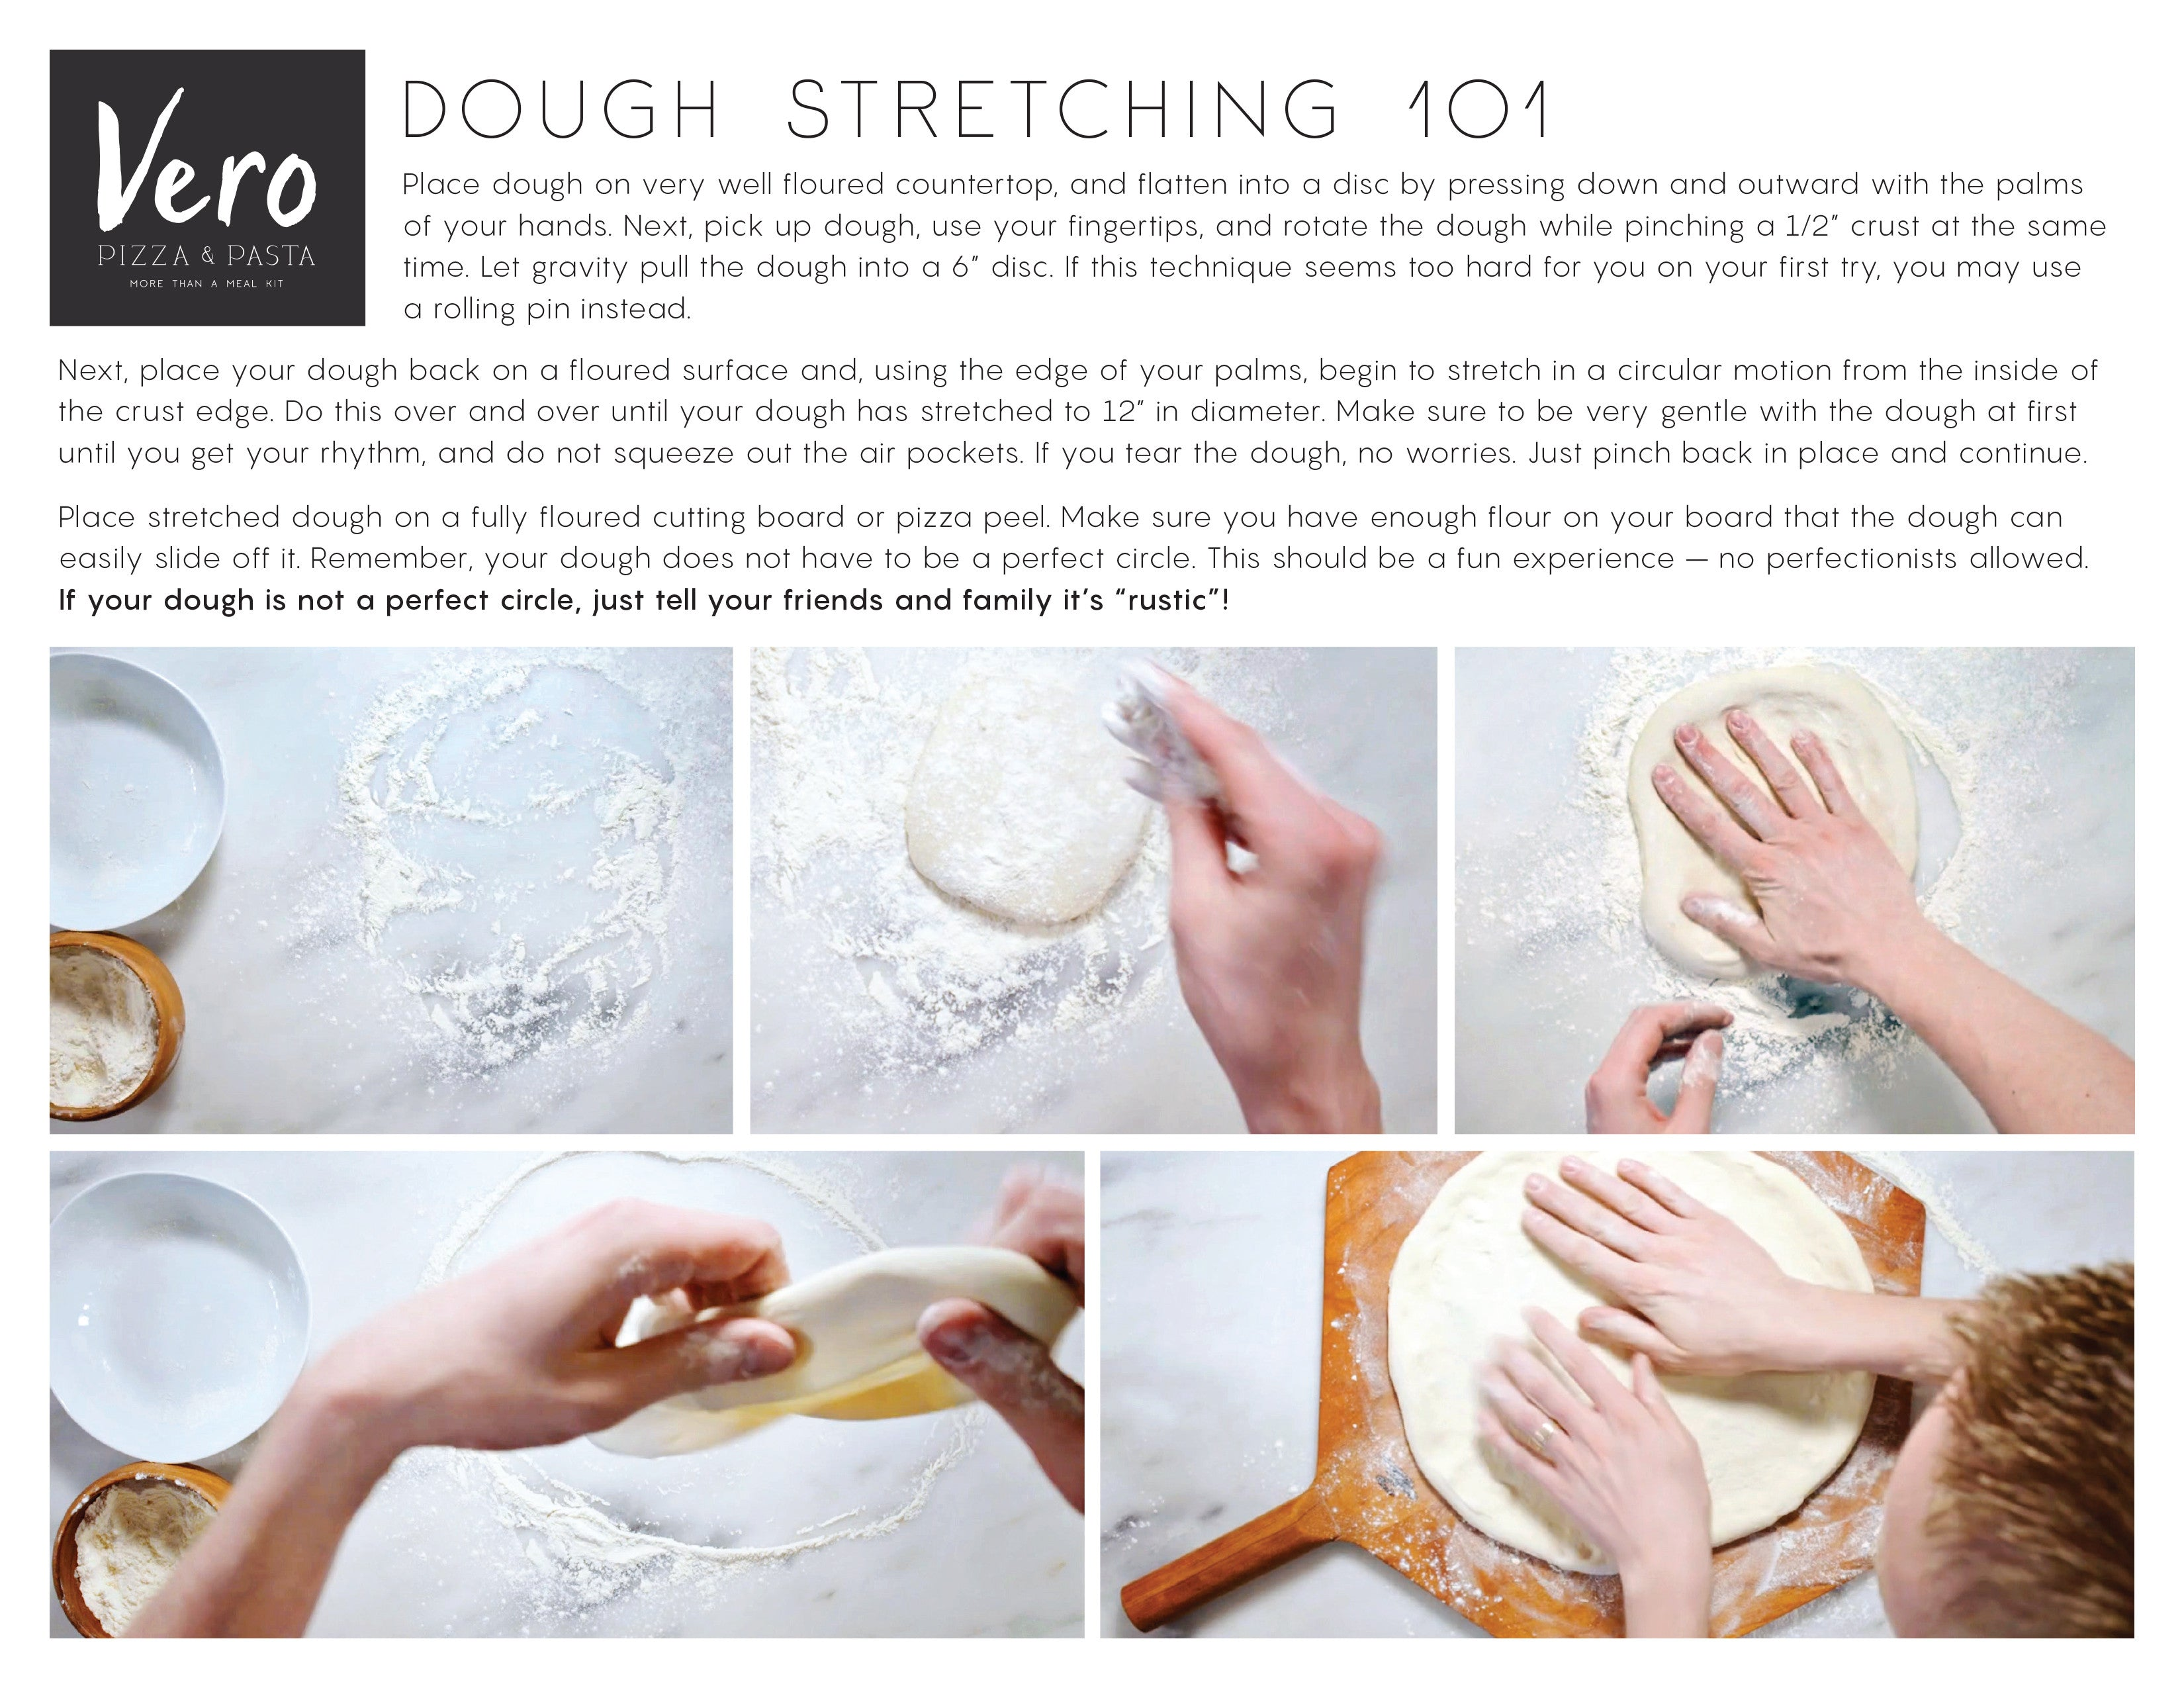 Vero dough stretching instructions